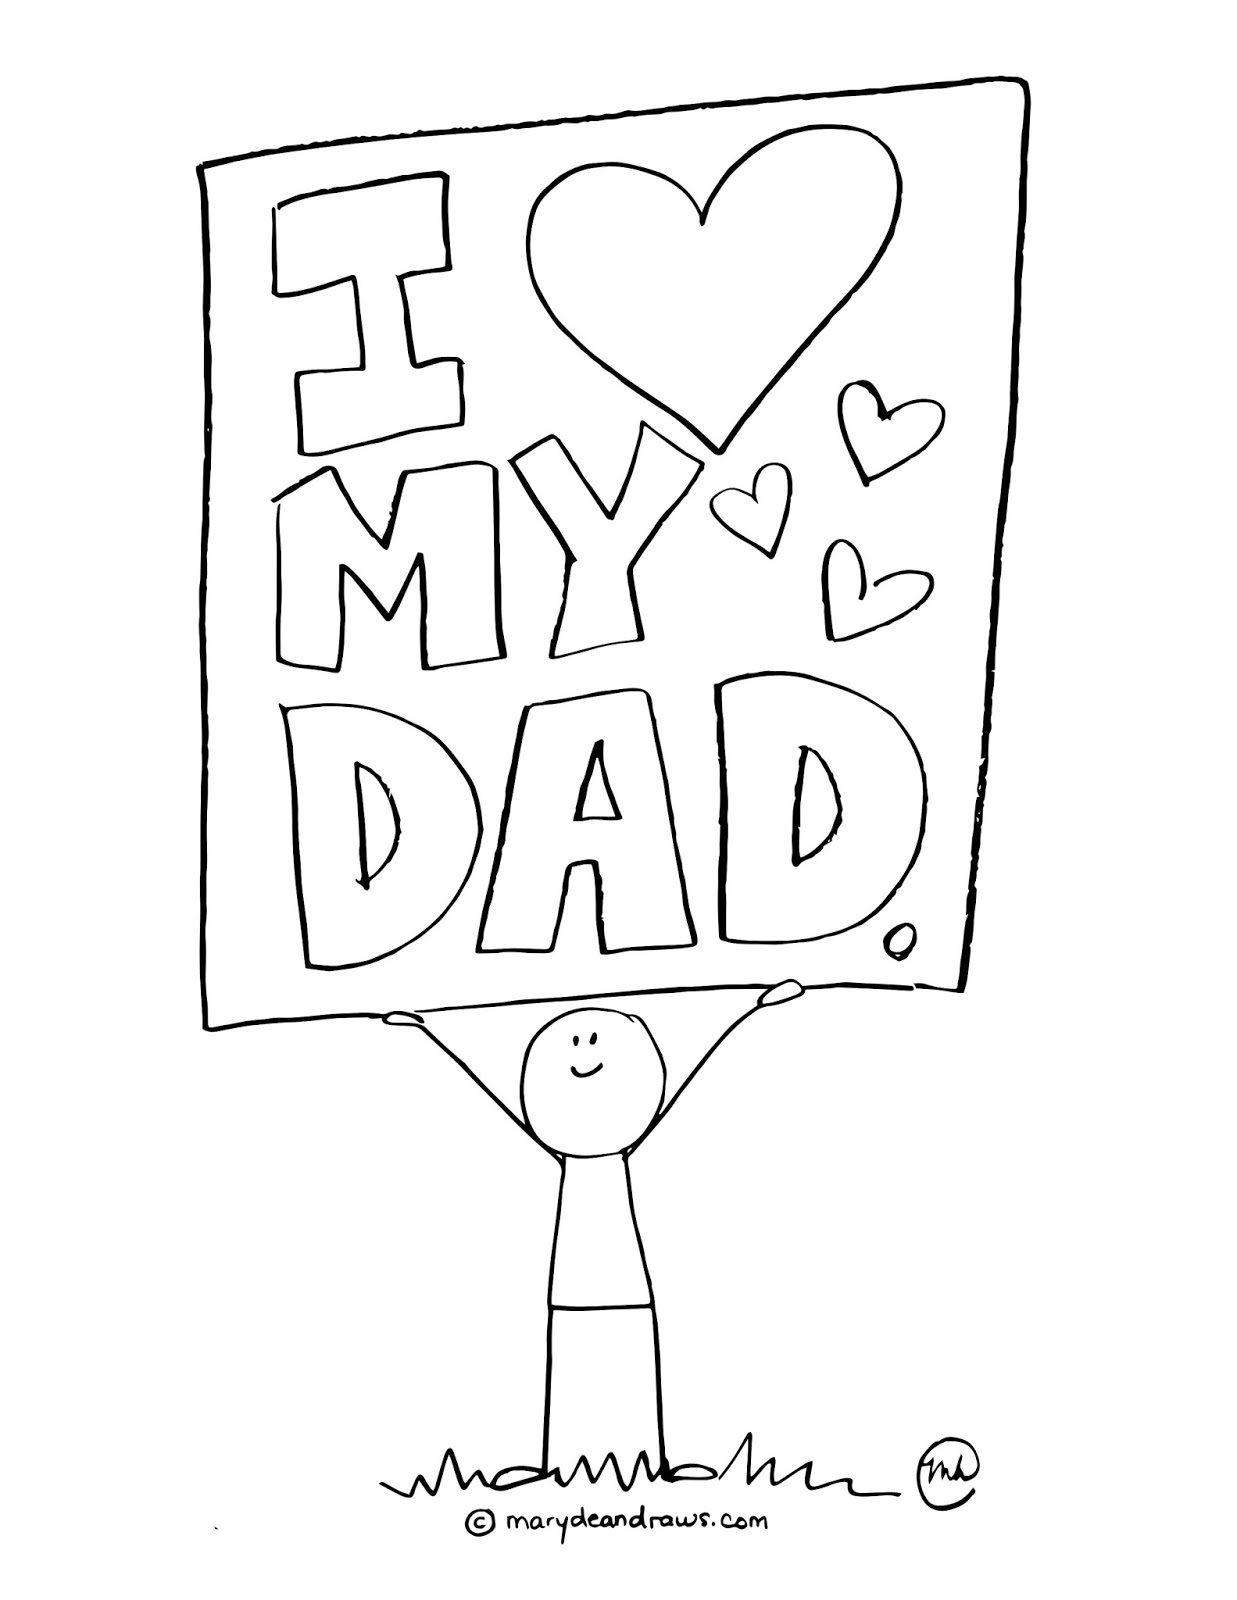 Printable Fill-in-the-Blank Father's Day Card Not only are these cards free and printable, but you can personalize them by filling in the blank about what Dad does best. Get the printable at.